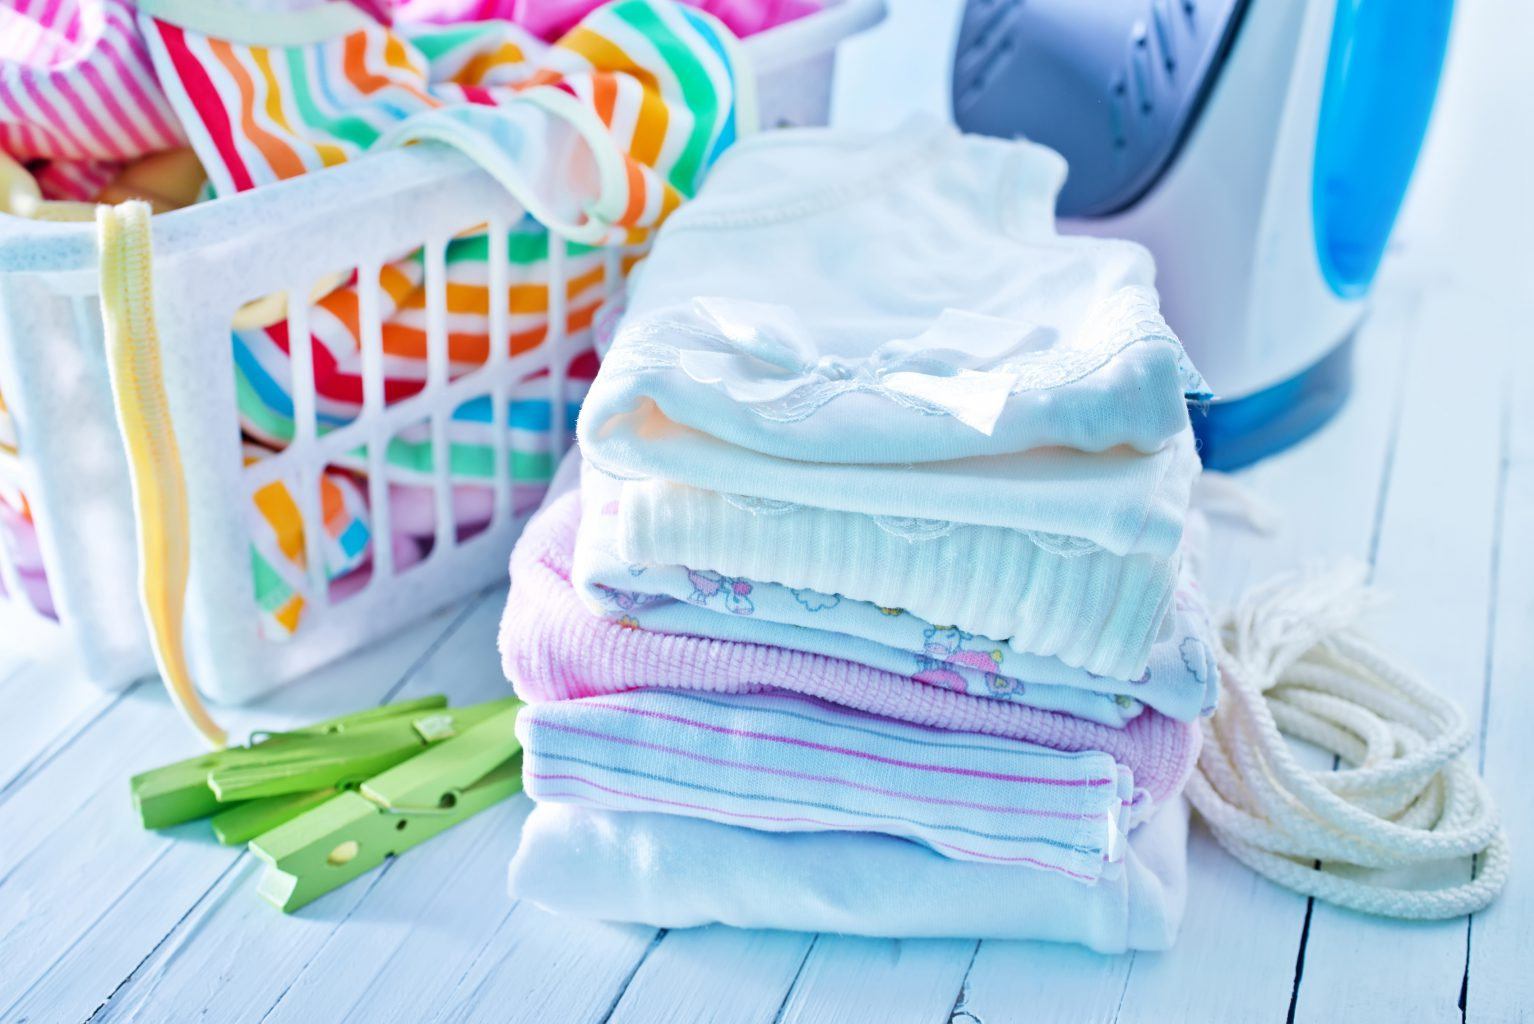 Laundry Bag For Baby Clothes 10 Baby Laundry Tricks And Tips For New Moms Number 7 Is